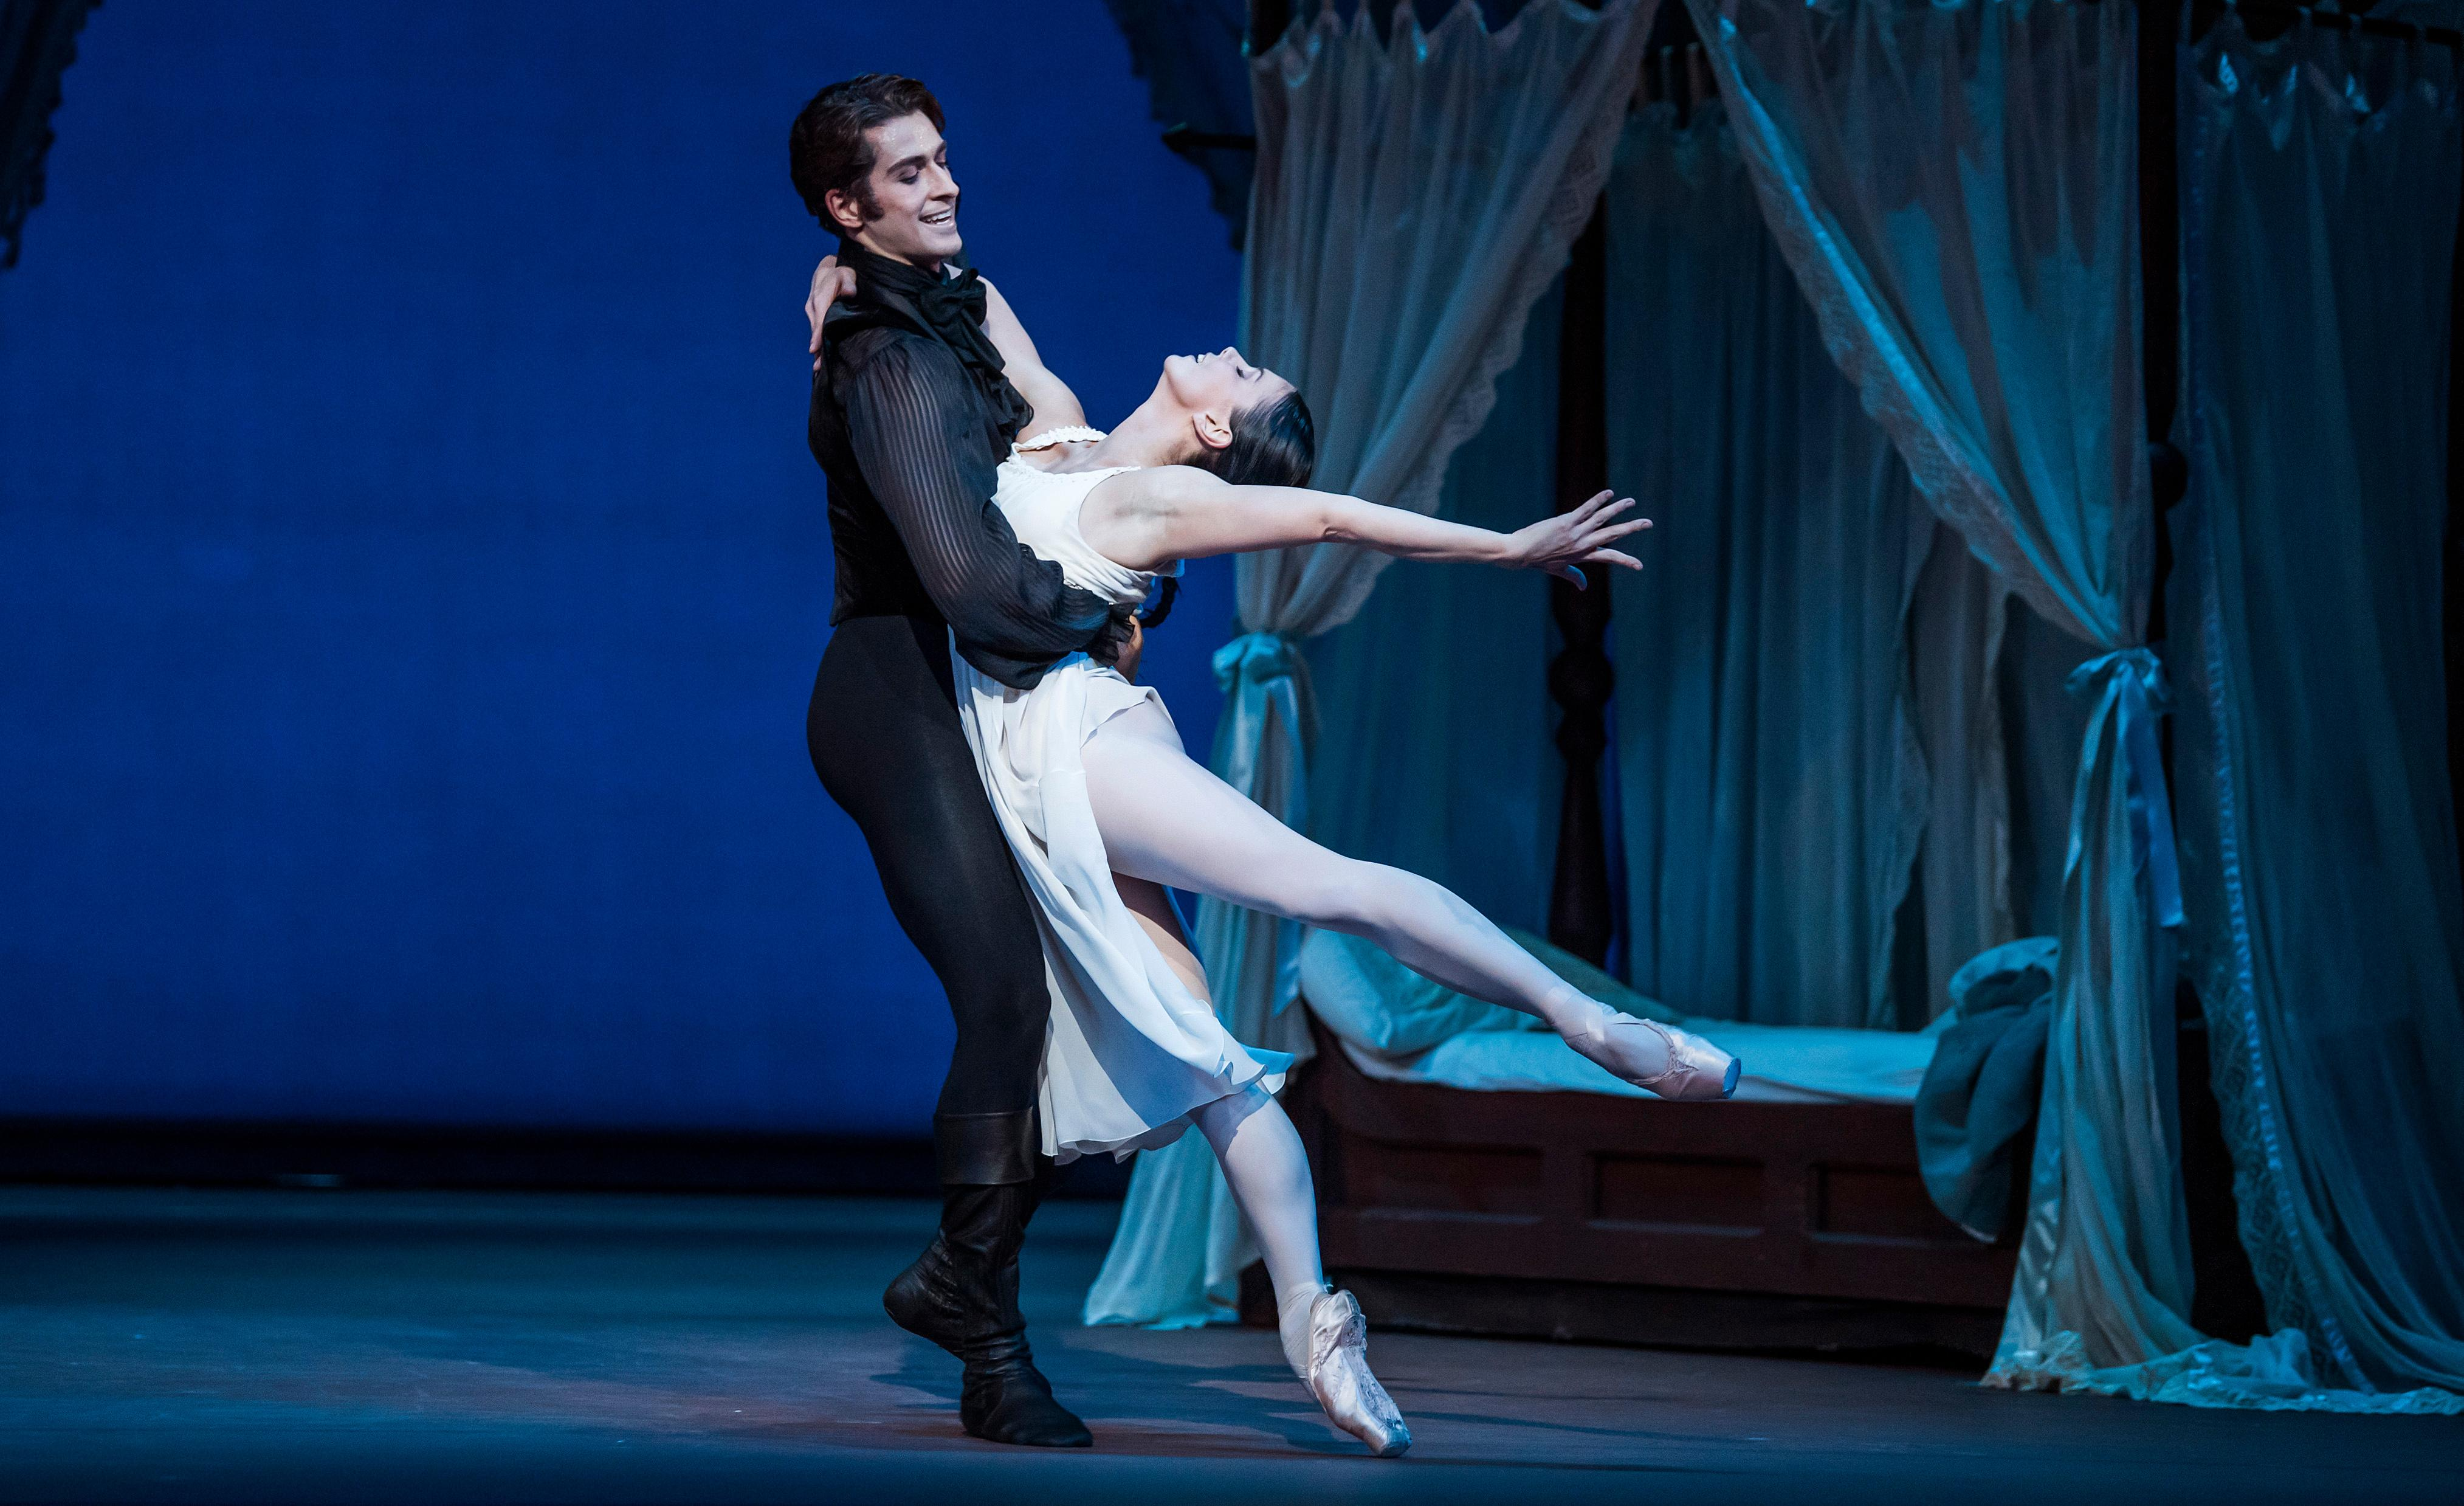 Onegin review – Natalia Osipova thrills with ecstatic, lovestruck obsession